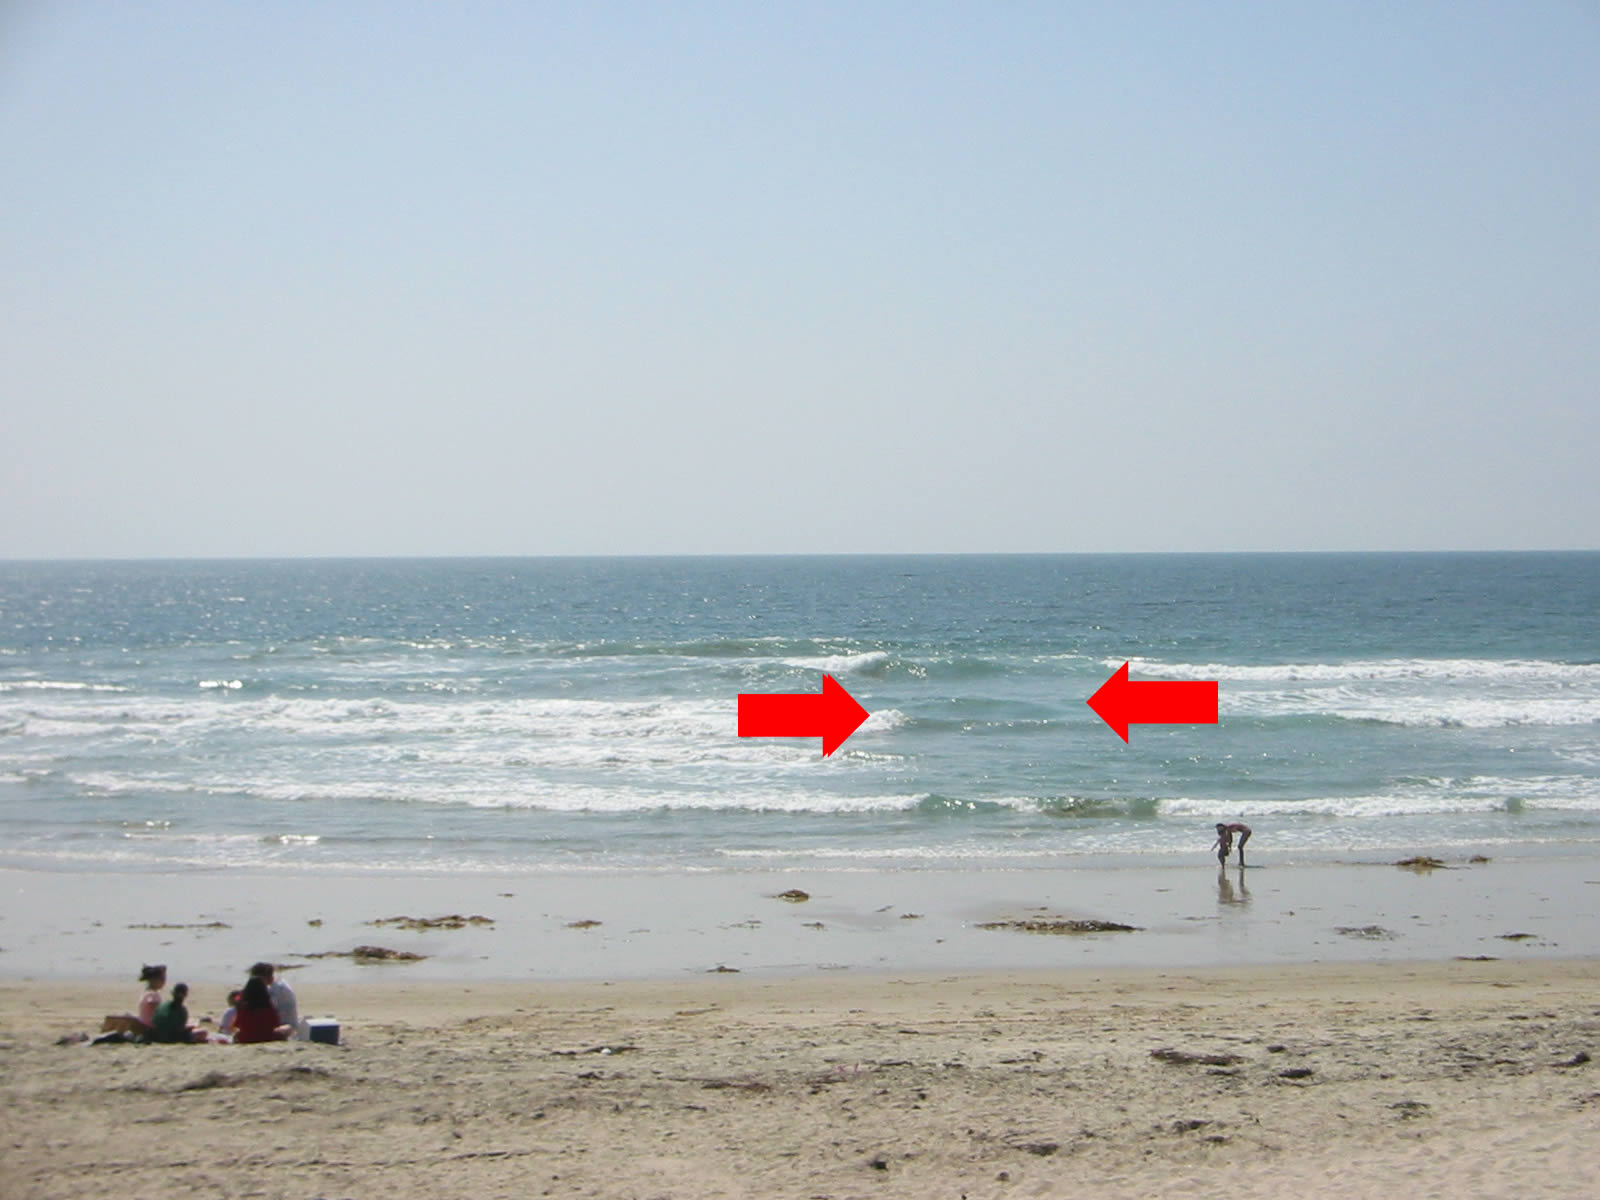 Rip current Example 1